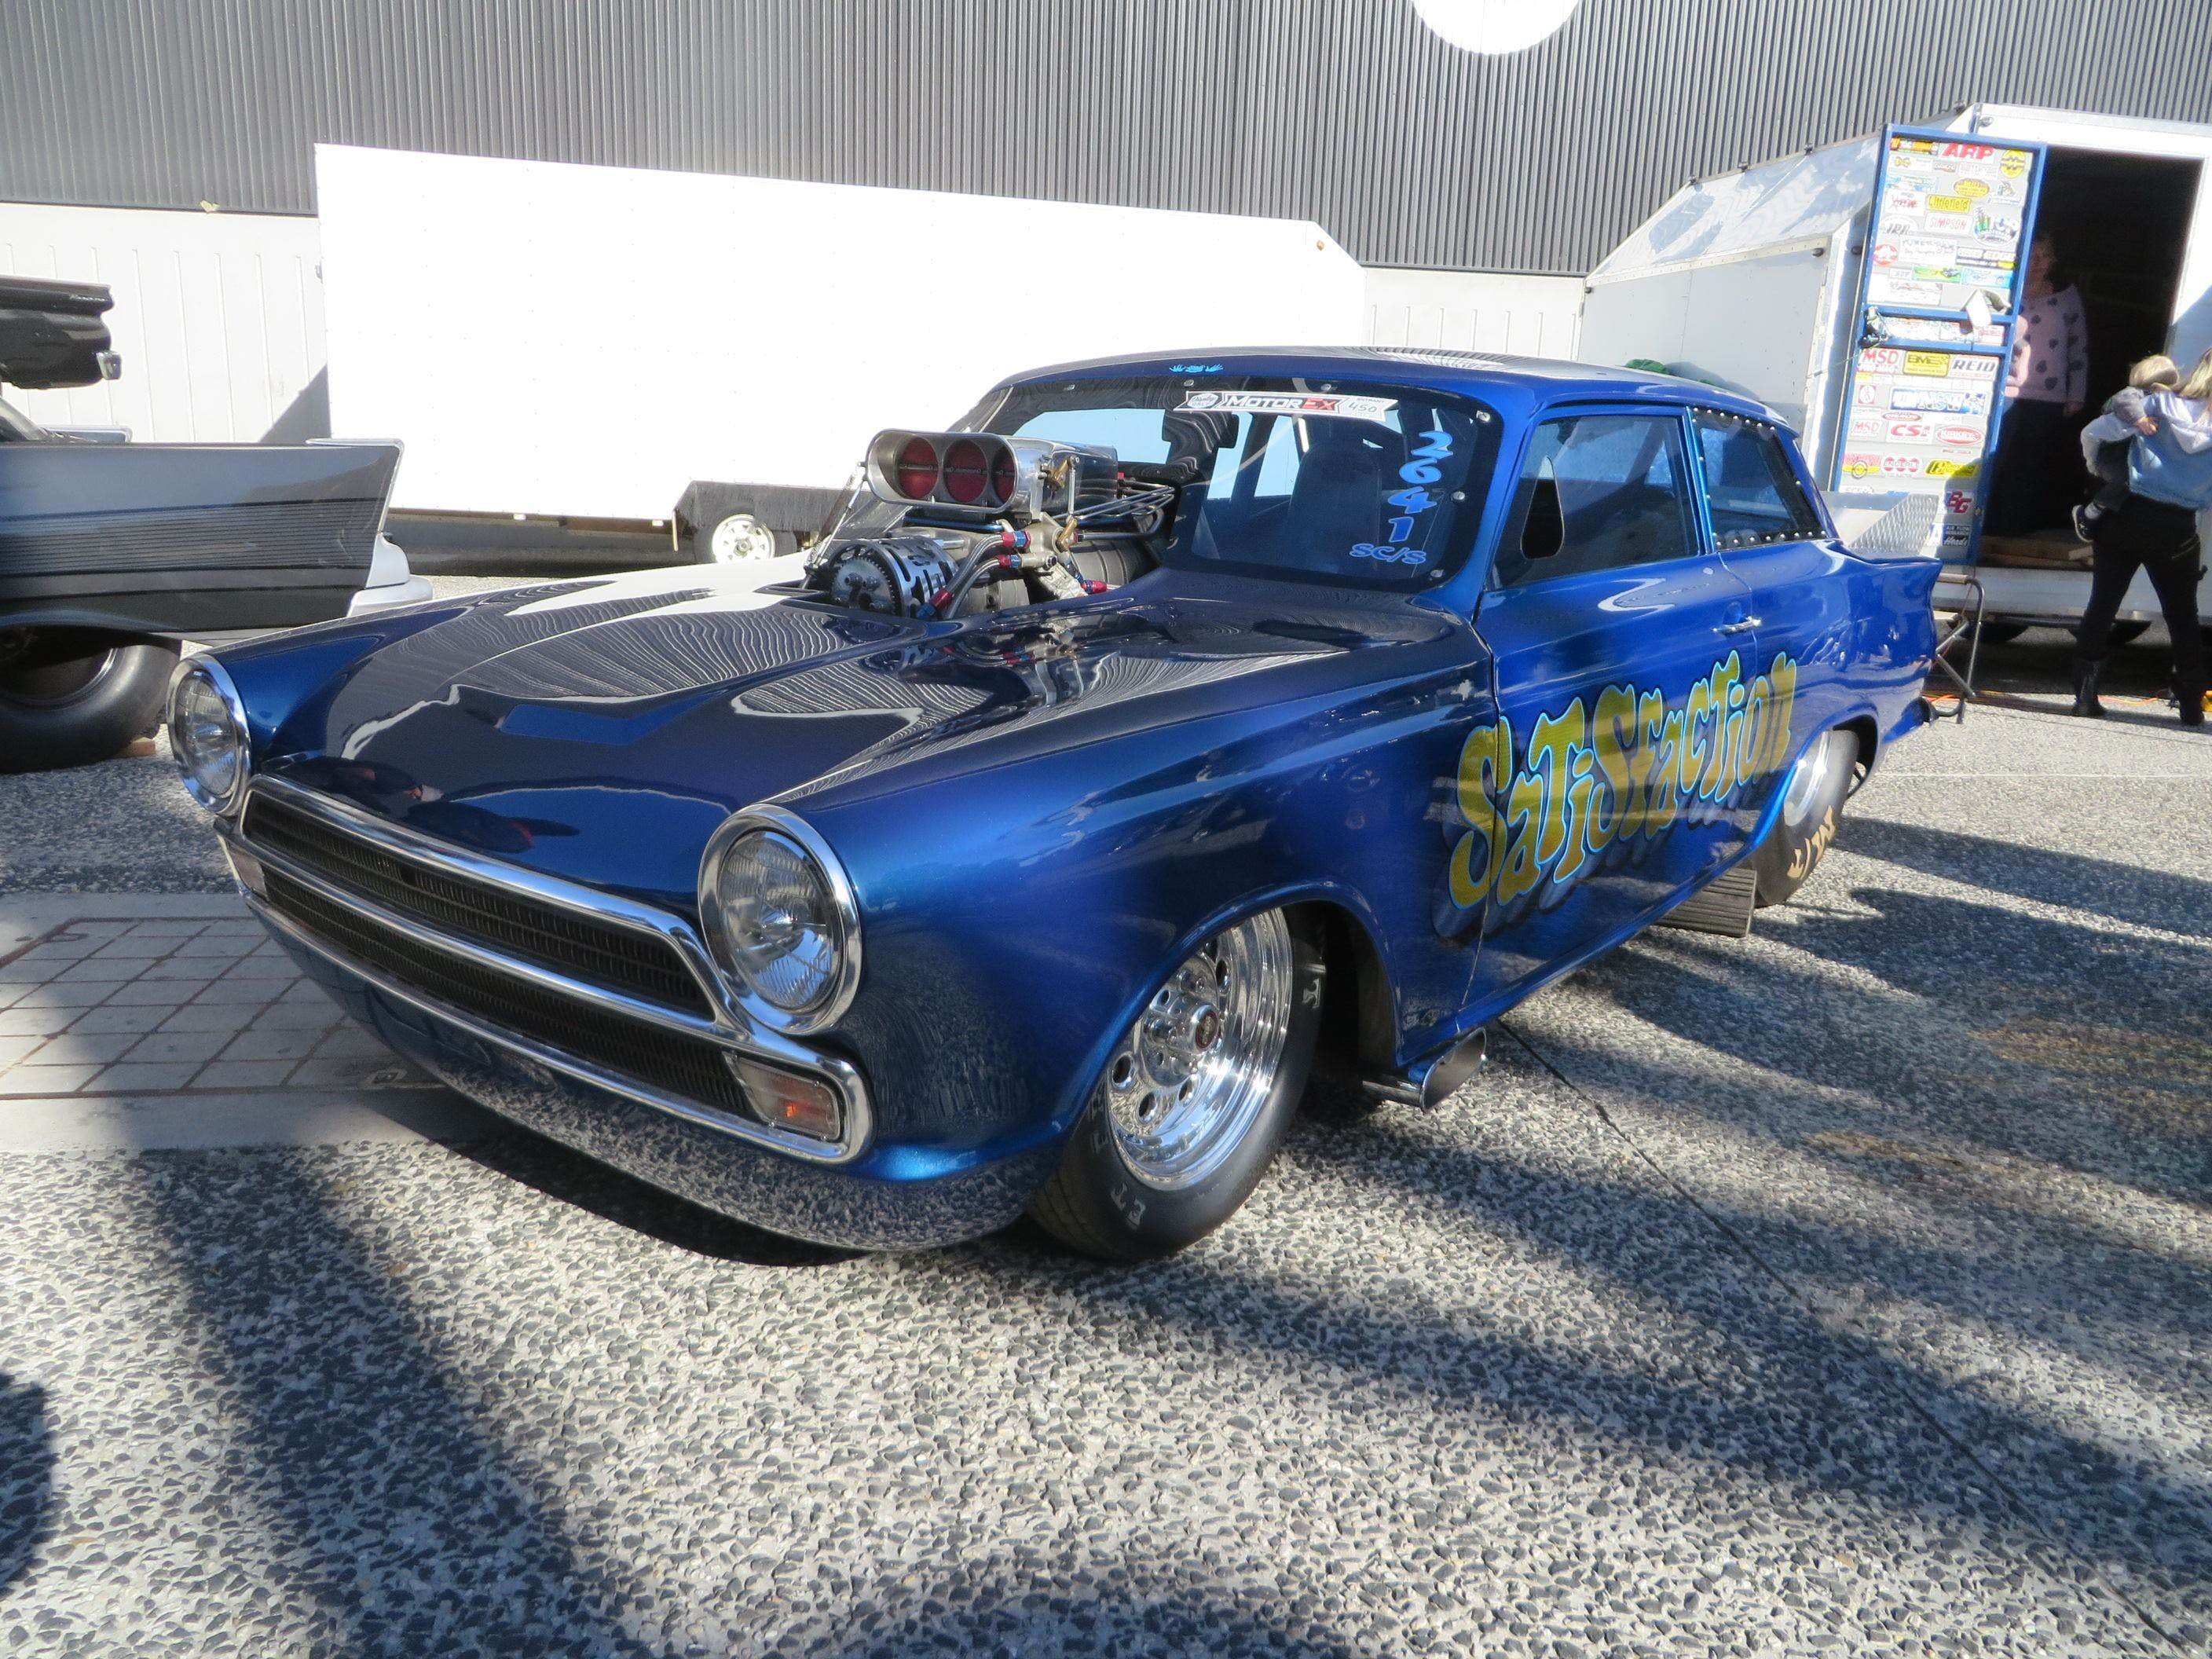 South Coast Nationals - Car, Bike and Truck Spectacular